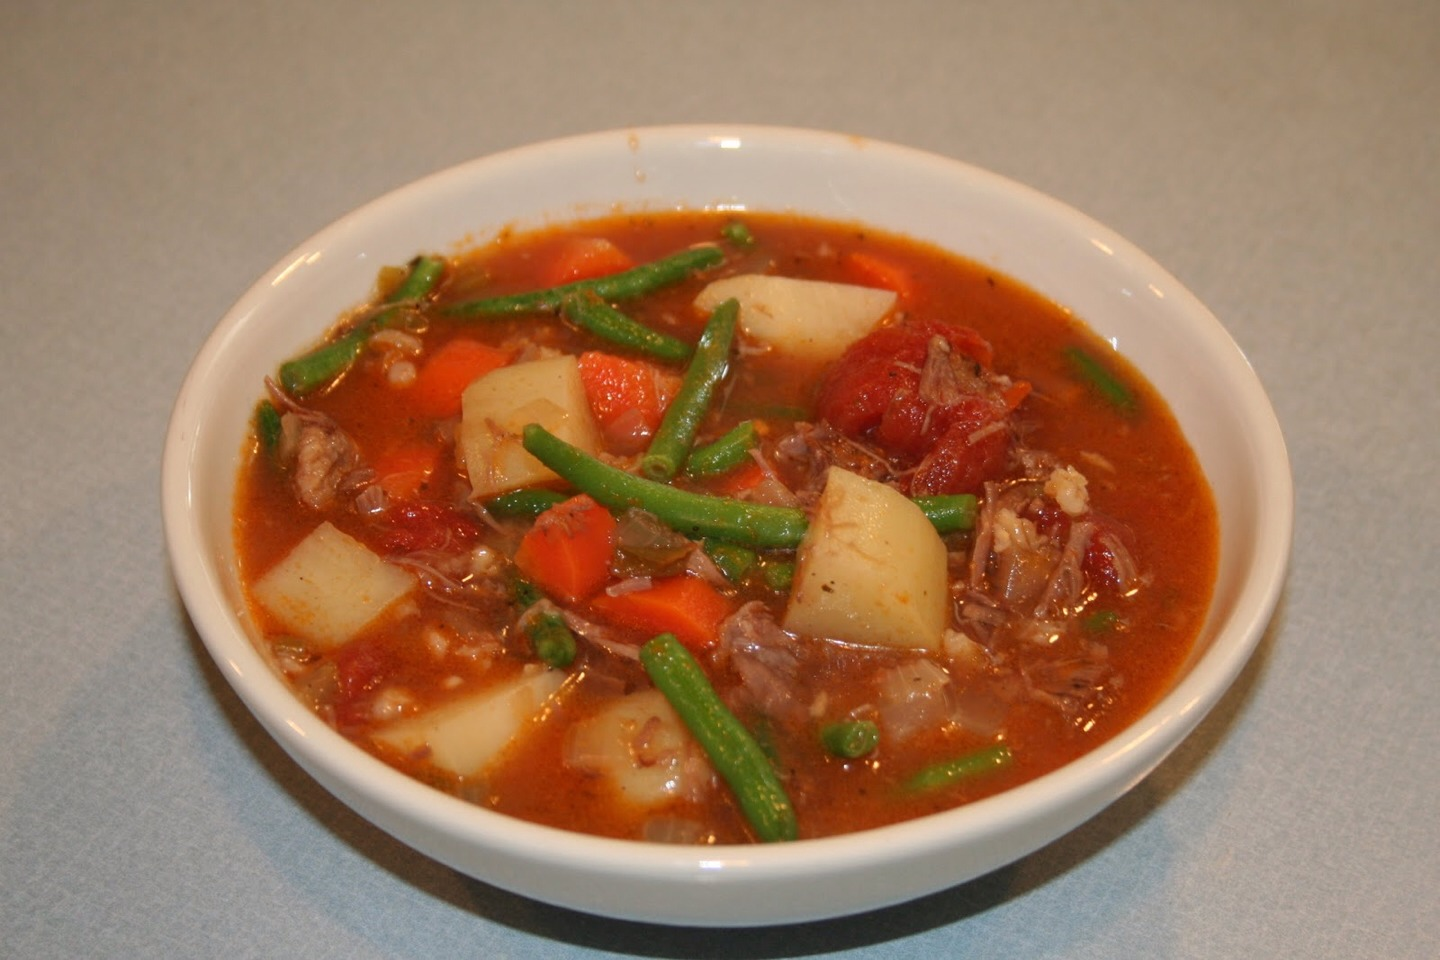 This soup is very hearty and healthy.